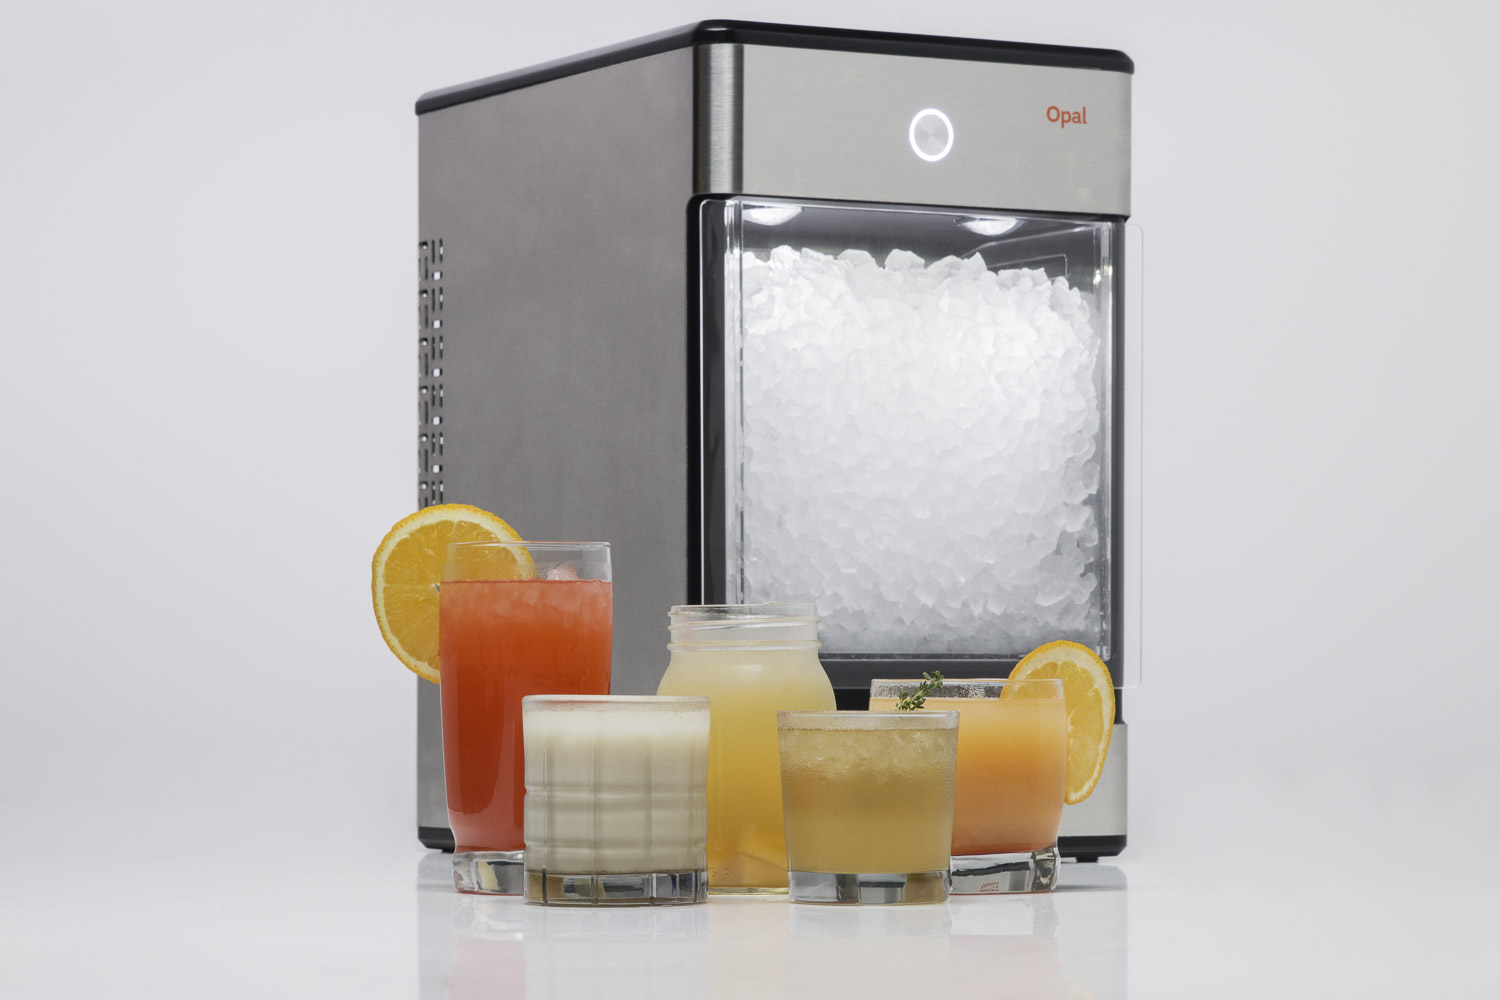 GEs Opal Ice Maker Brings Sonics Nugget Ice Home - Reviewed.com ...